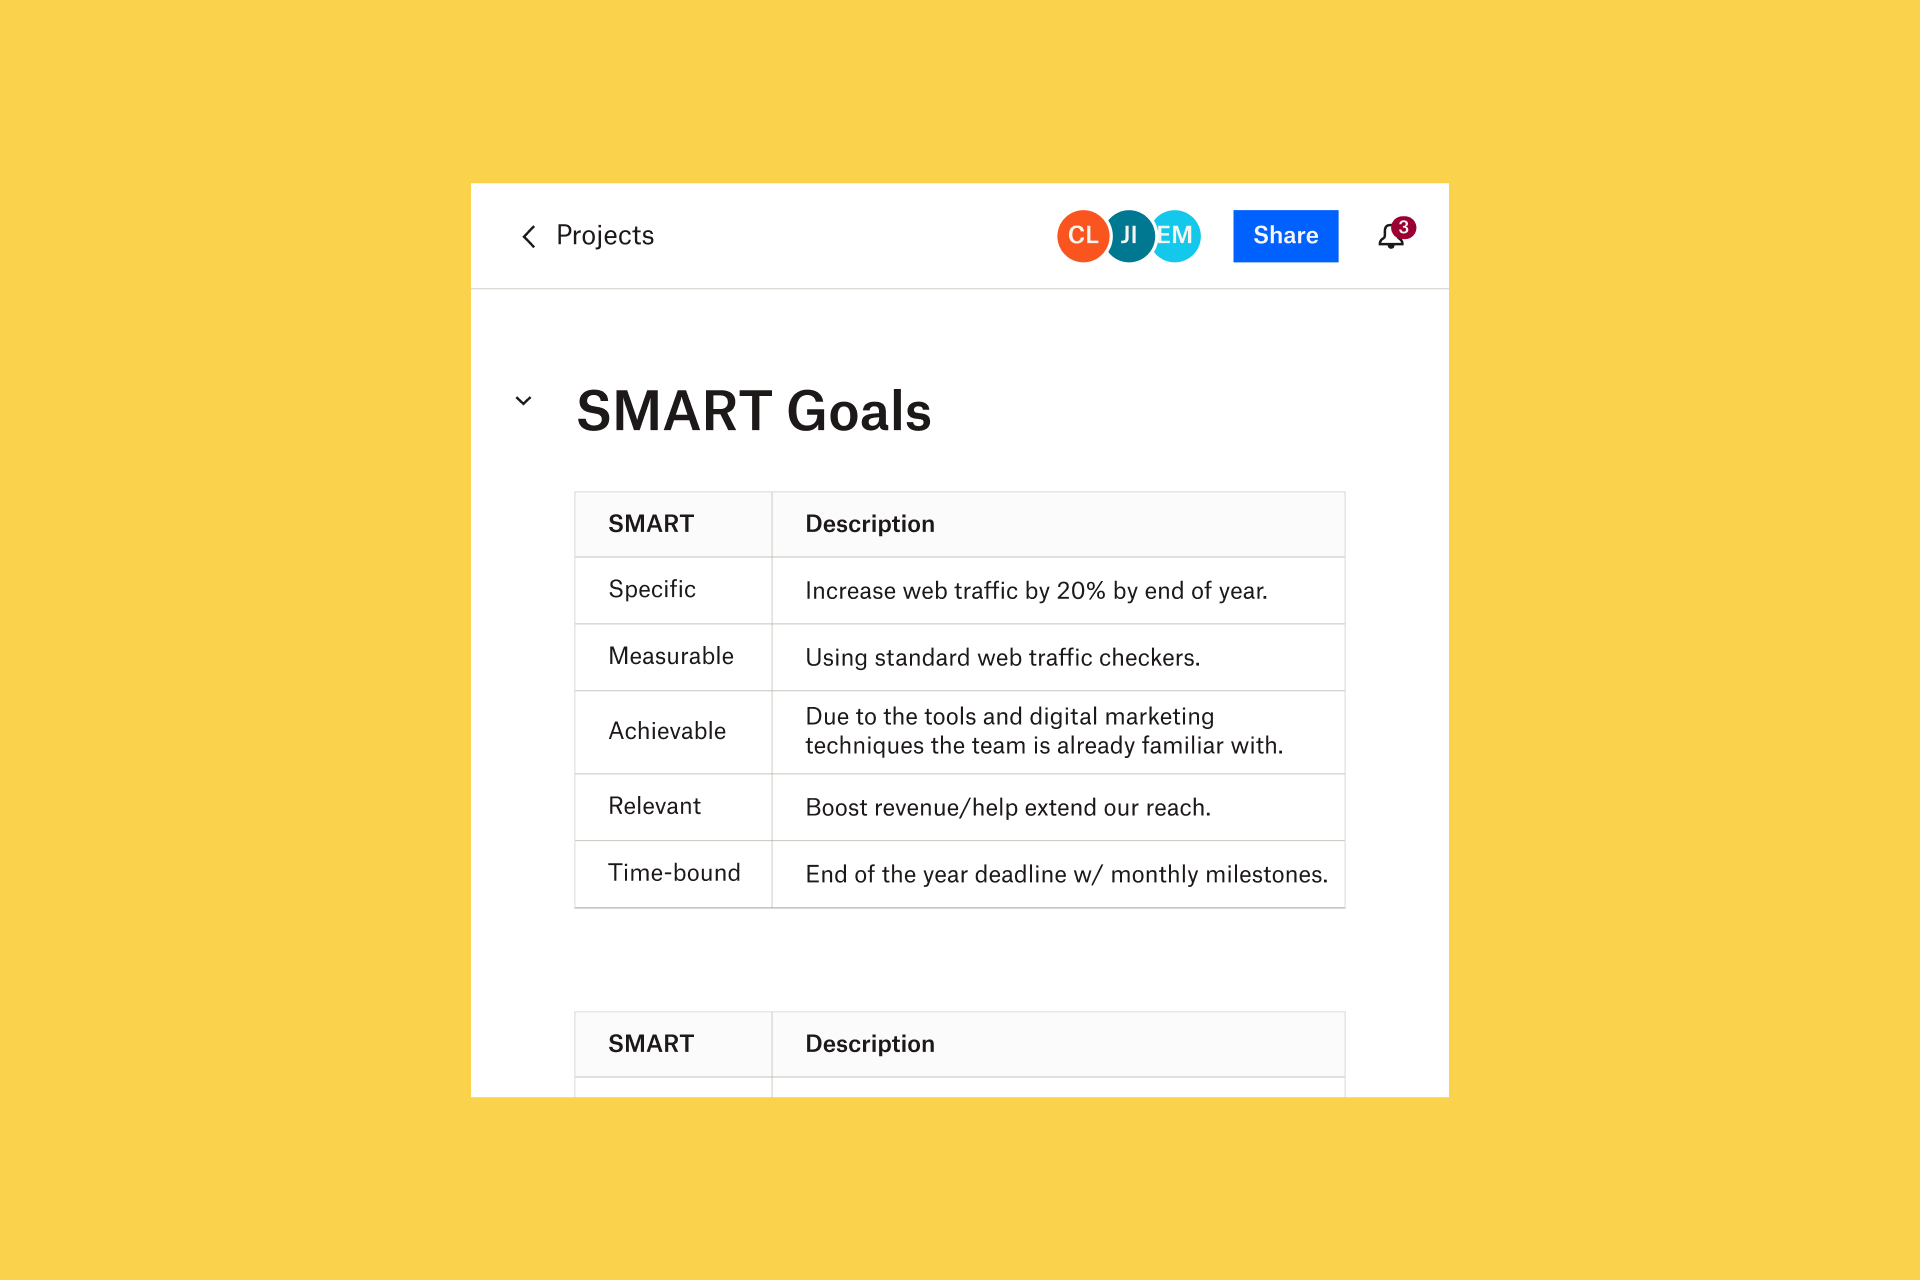 A Paper doc shows a table breaking a SMART goal down into the five elements of a SMART goal, with a description for each.